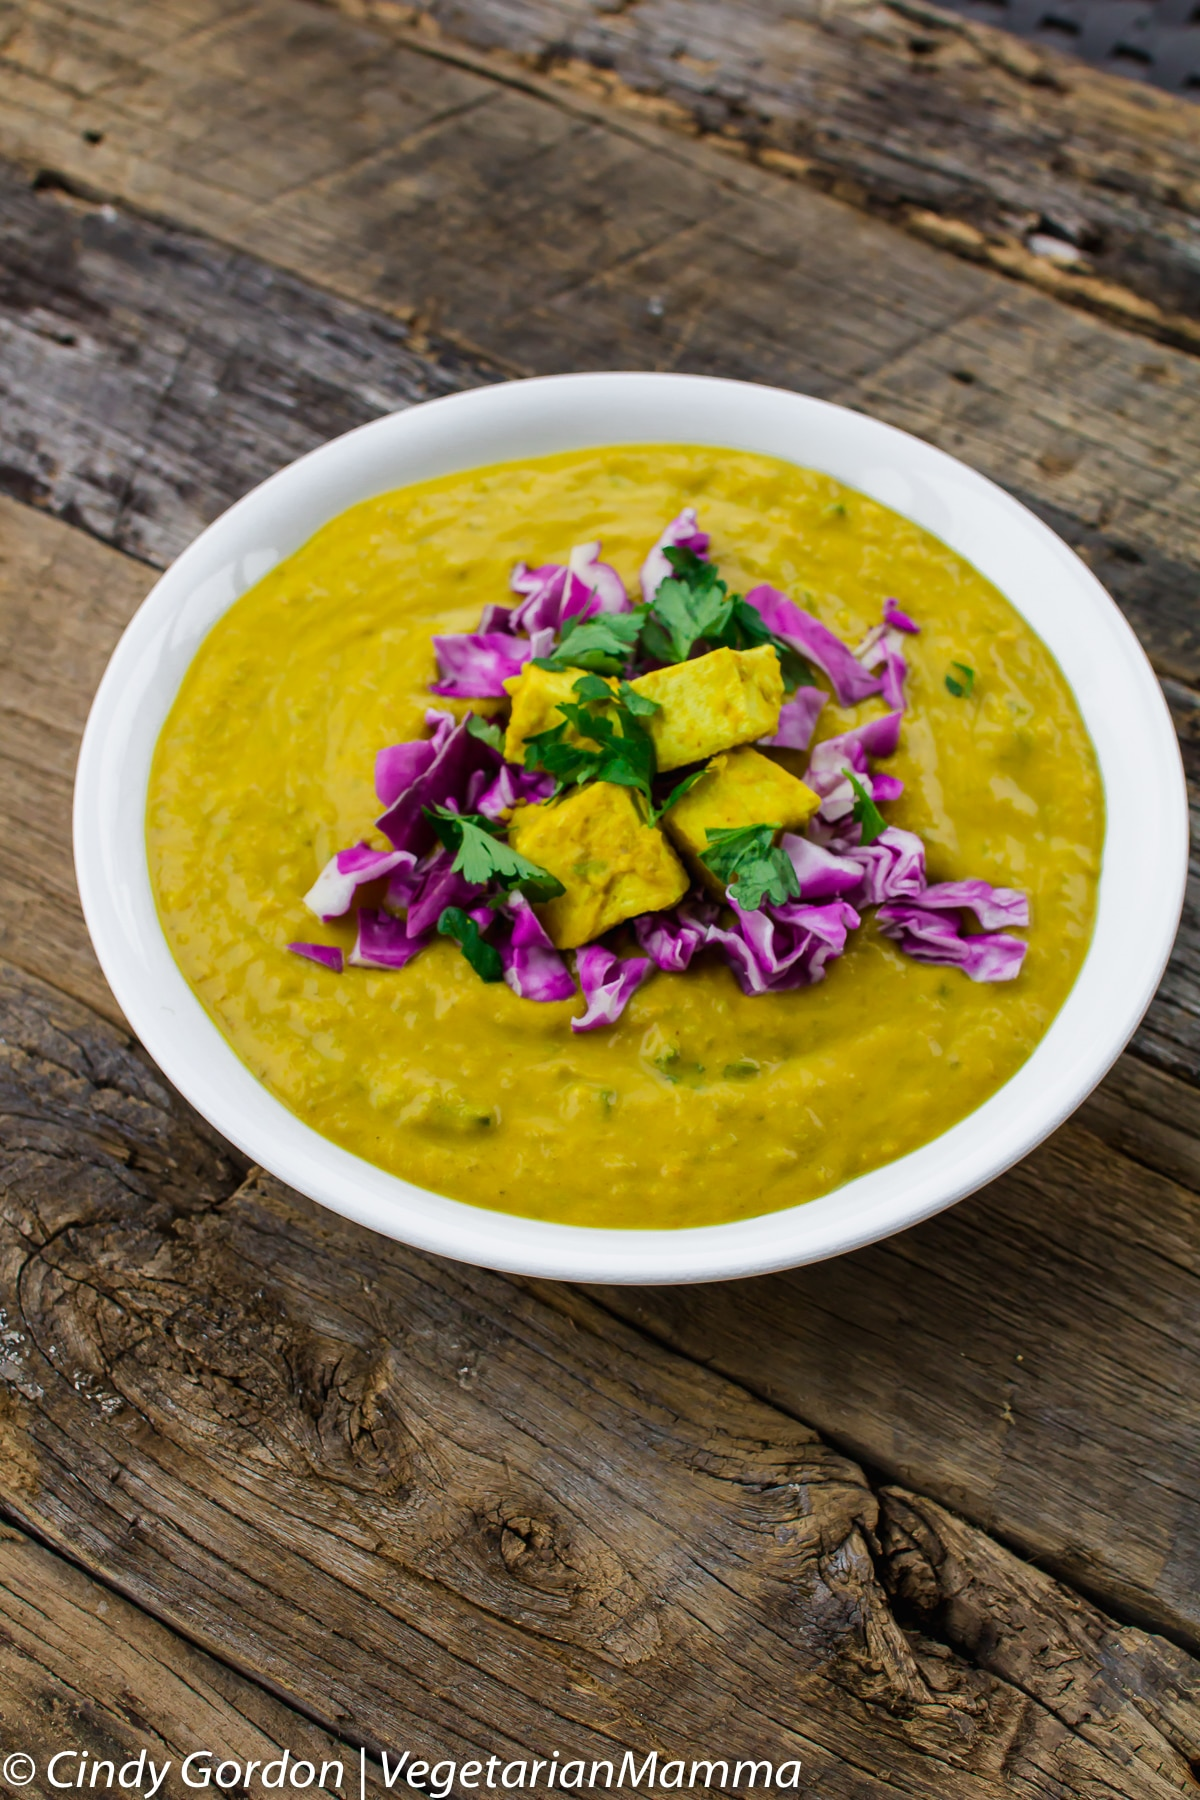 Vegan Coconut Curry soup is full of bright inviting flavors and colors.